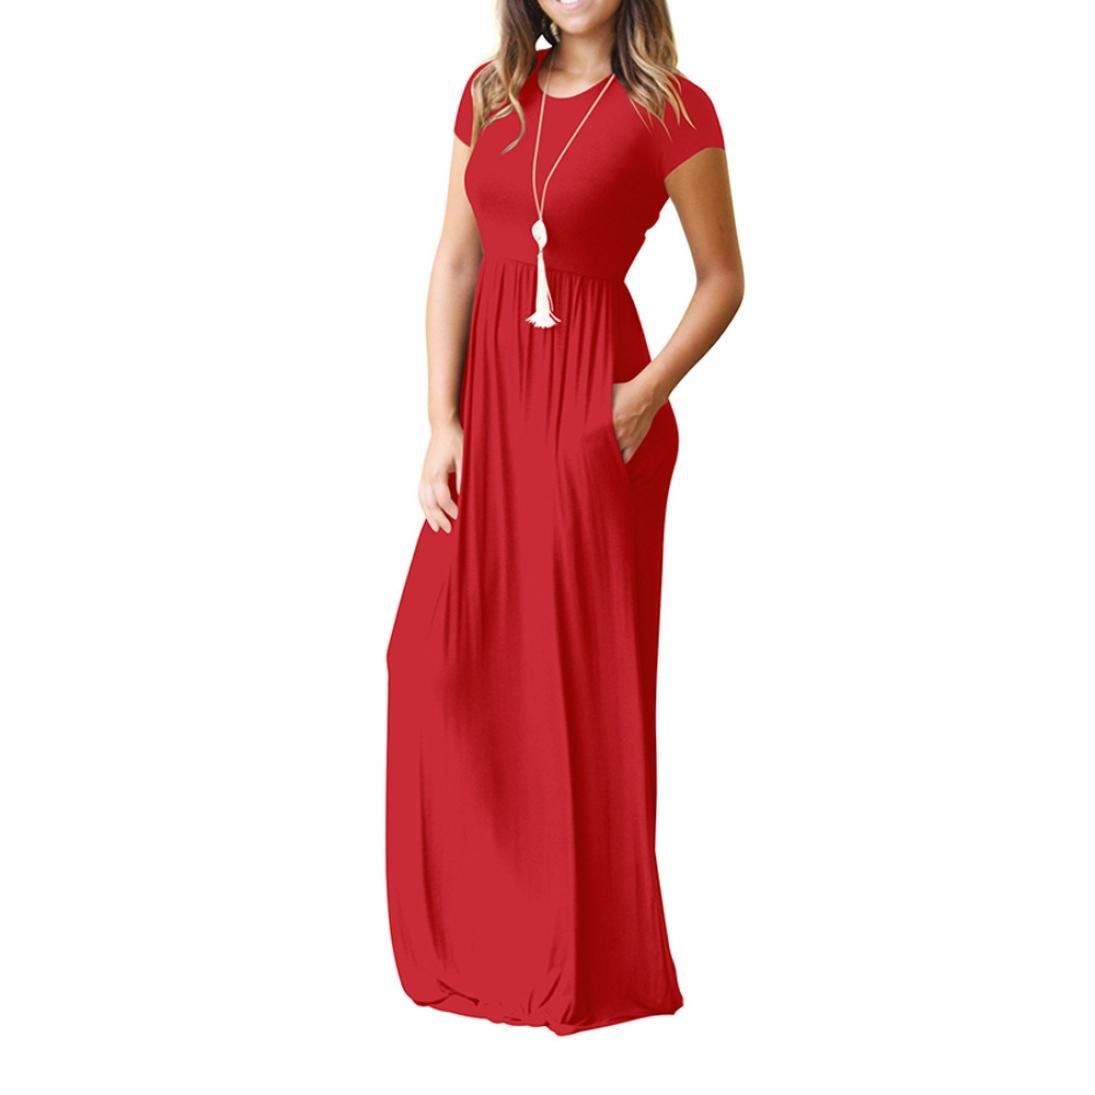 c0cc688f216c MEEYA Women O-Neck Casual Short Sleeve Floor-Length Loose Party Dress with  Pockets at Amazon Women s Clothing store